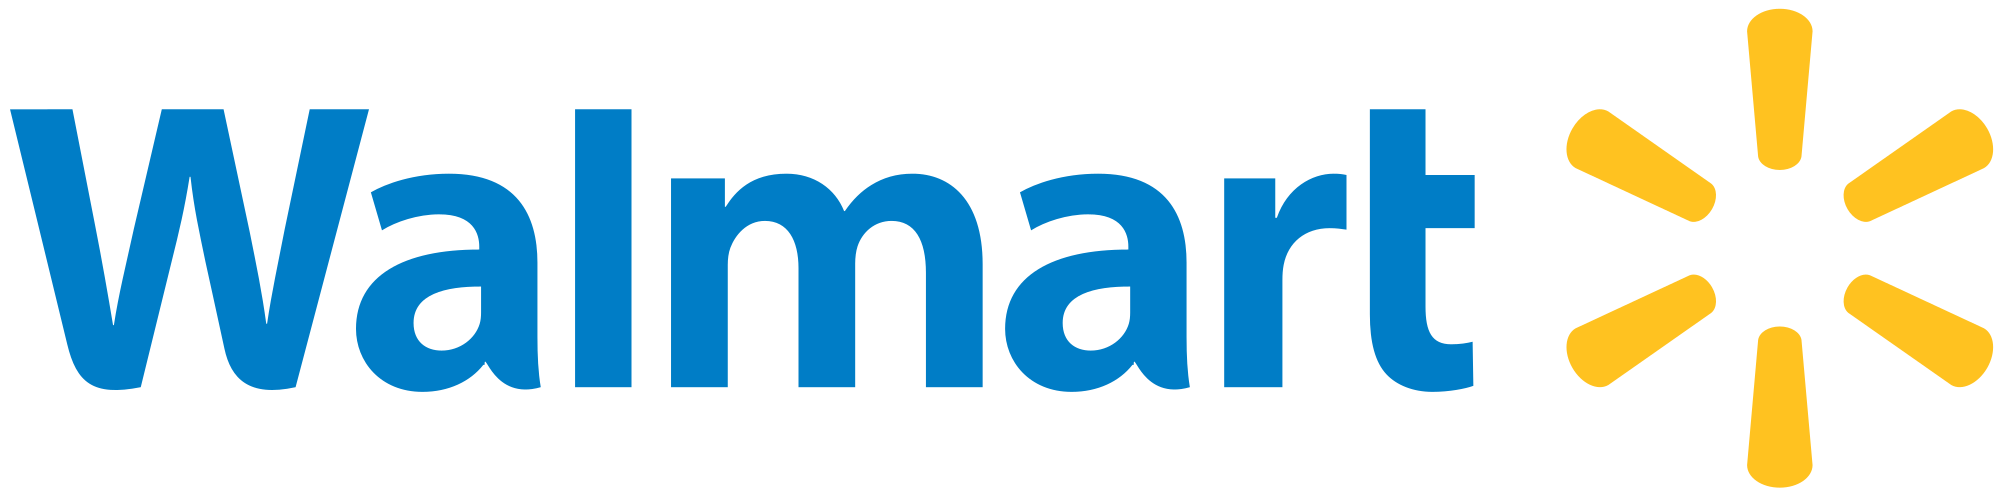 Ello Products are available at Walmart.